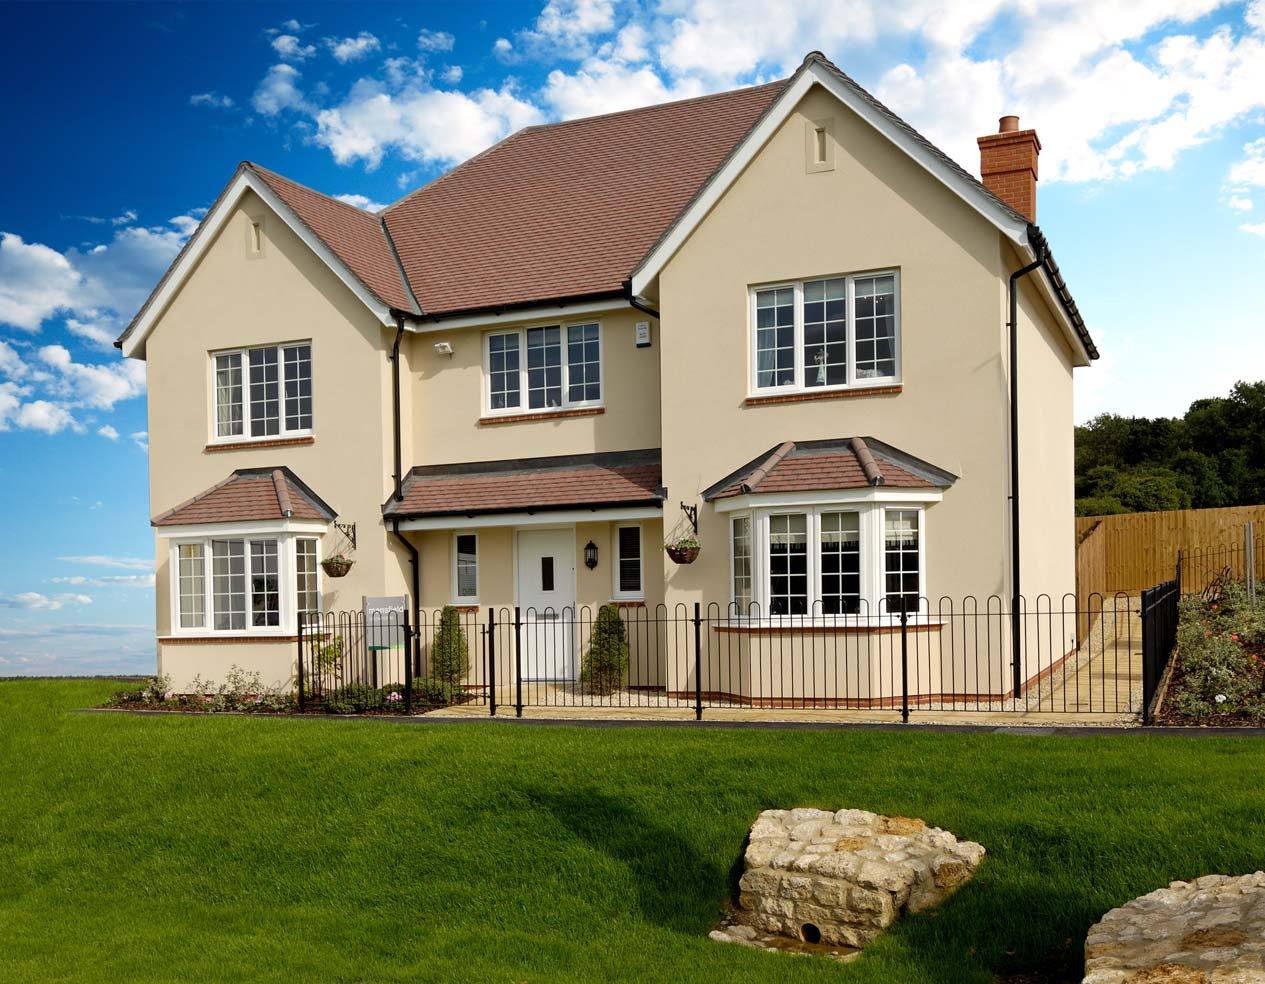 homes-for-sale-oxford new-houses-for-sale-in-cumnor 44001